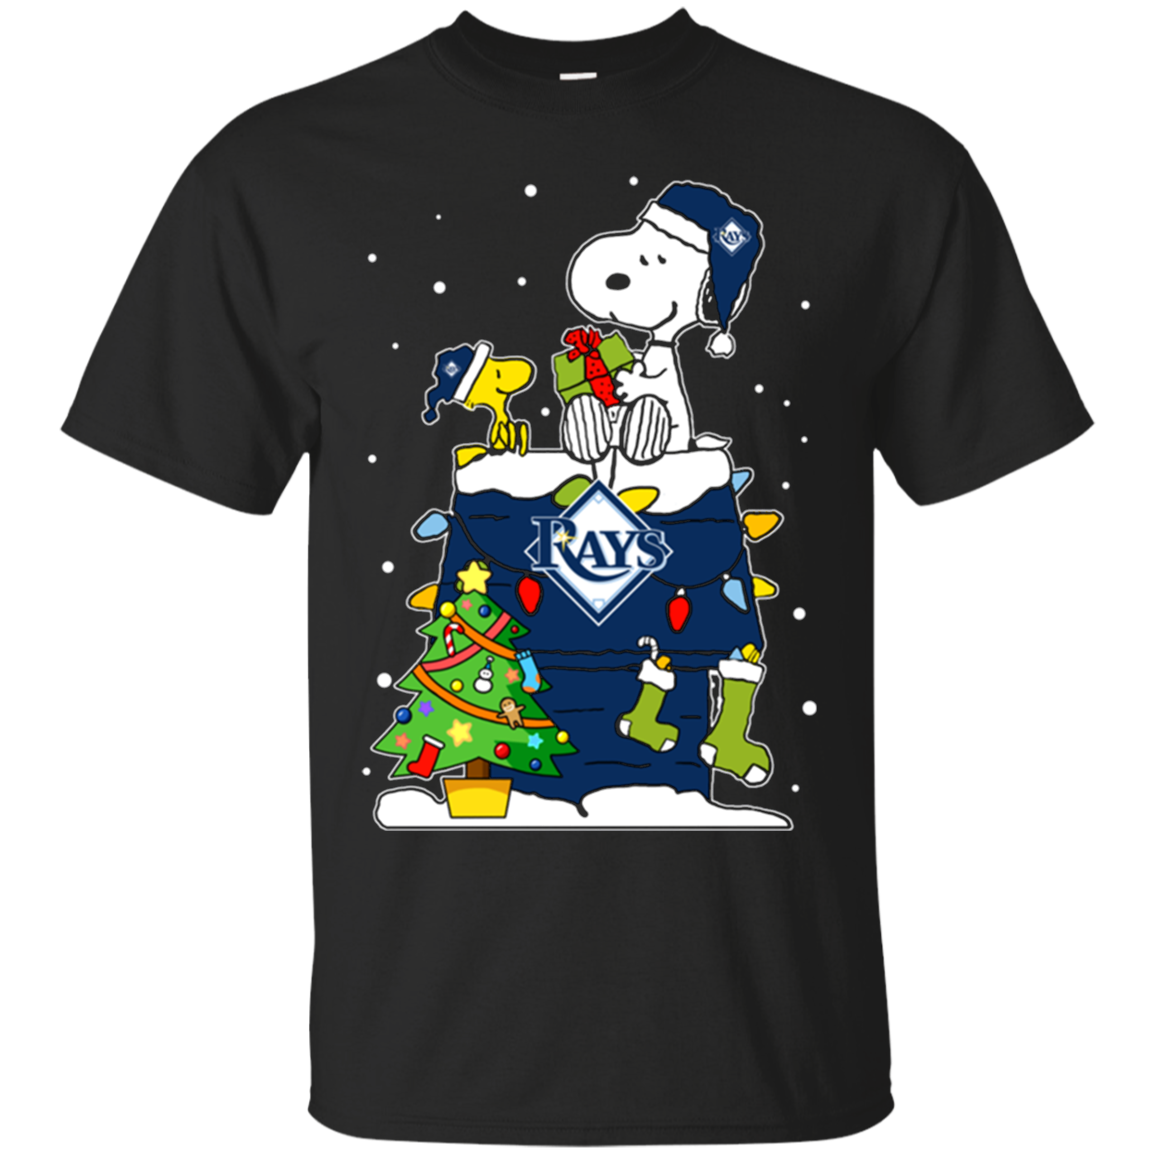 Find Tampa Bay Rays Snoopy Ugly Christmas Sweaters Shirts